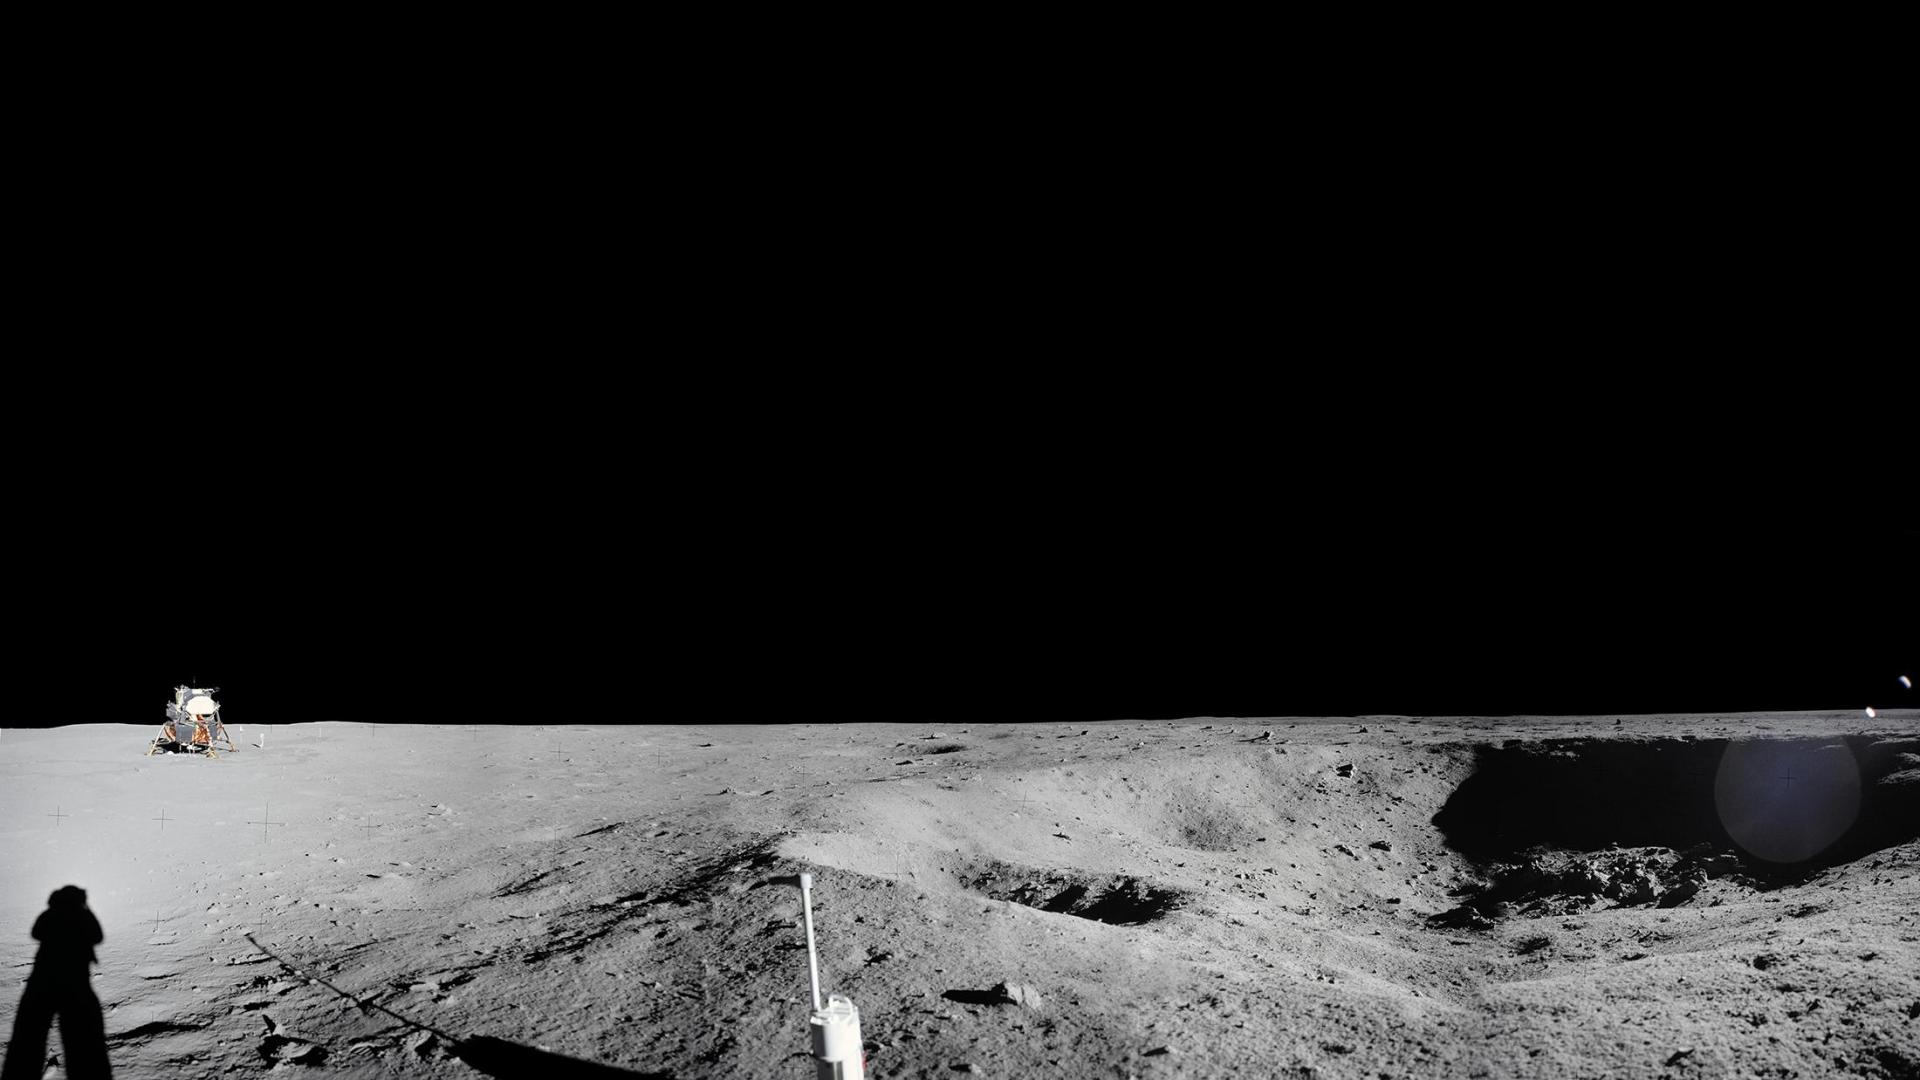 Panoramic view of the Apollo 11 landing site from Little West Crater